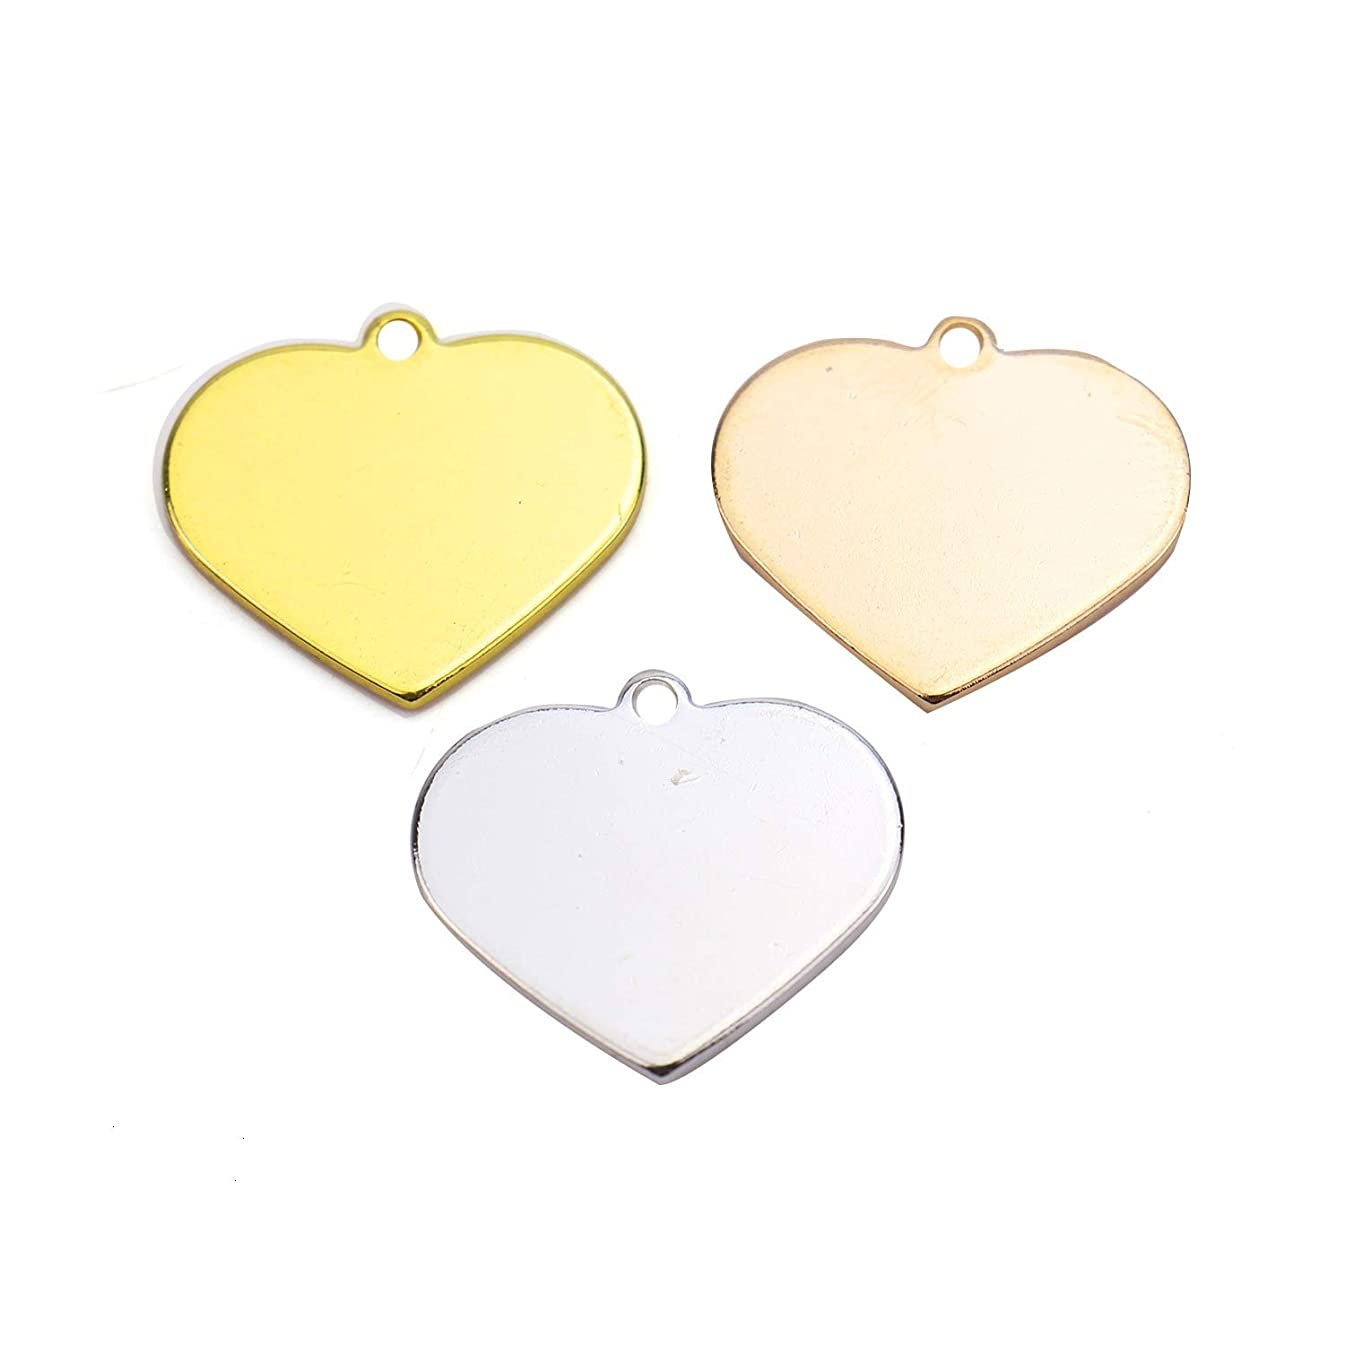 Monrocco 15 PCS Brass Heart Shaped Blank Stamping Tags,Jewelry Tools Stamping Supplies